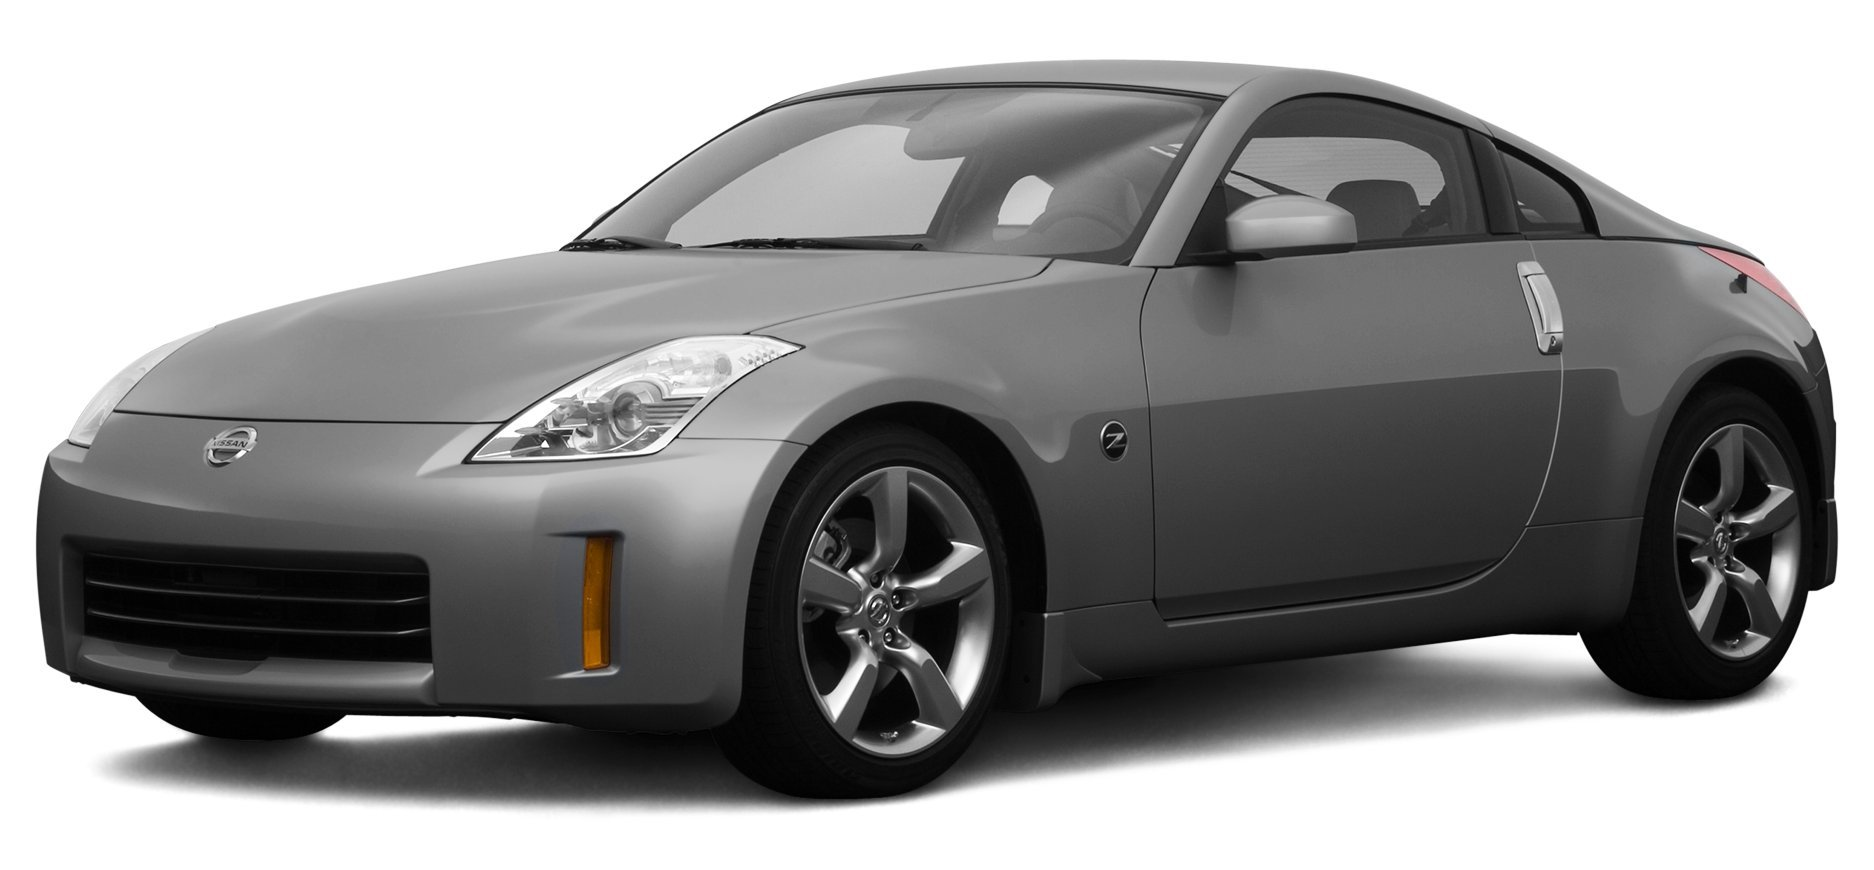 2008 Nissan 350Z, 2 Door Coupe Manual Transmission ...